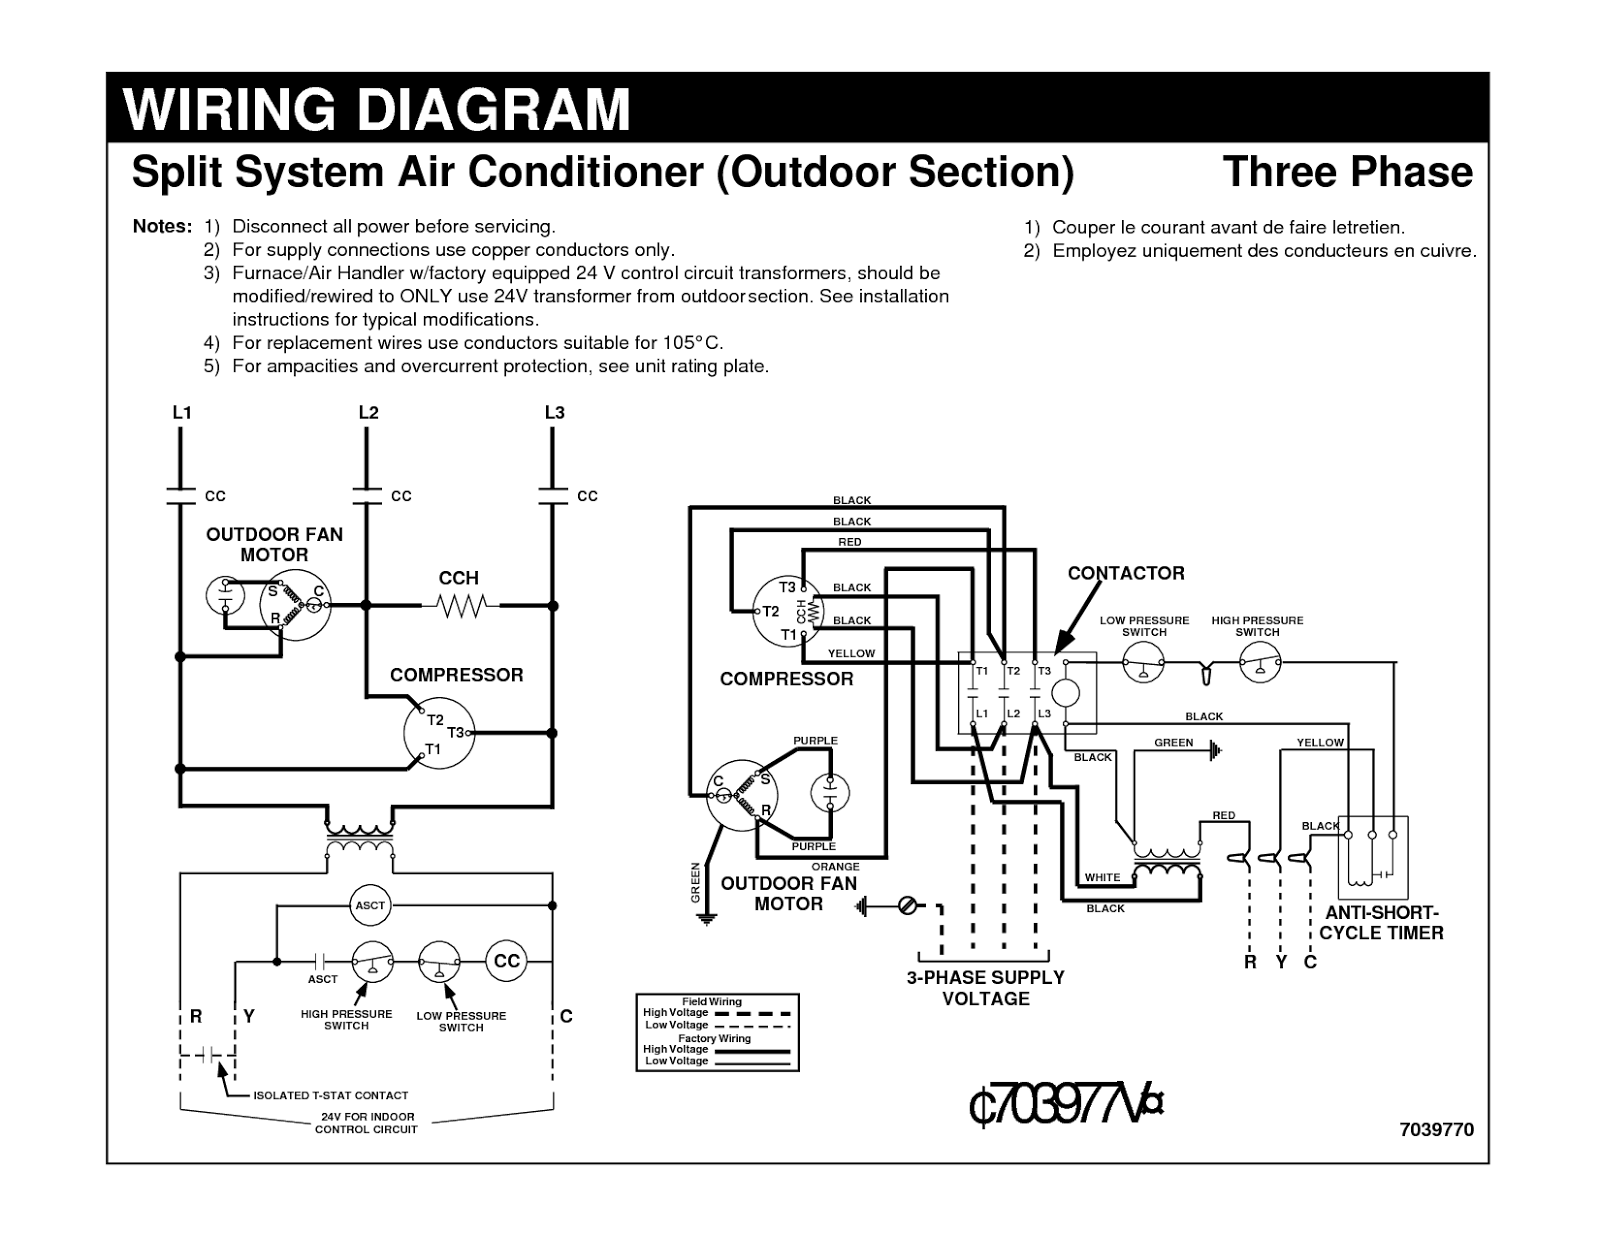 3 phase motor starter wiring diagrams pdf with Single Phase Motor Wiring Diagram For A Switch on Wye Delta Starter Wiring Diagram moreover 120 240v Wiring Diagram For Motor moreover Star Delta Starter as well Vfd Drive Circuit Diagram further Opel Vectra B Wiring Diagrams Astra 1991 Tol Pdf 1  resize6652c941ssl1 Wiring Diagram.